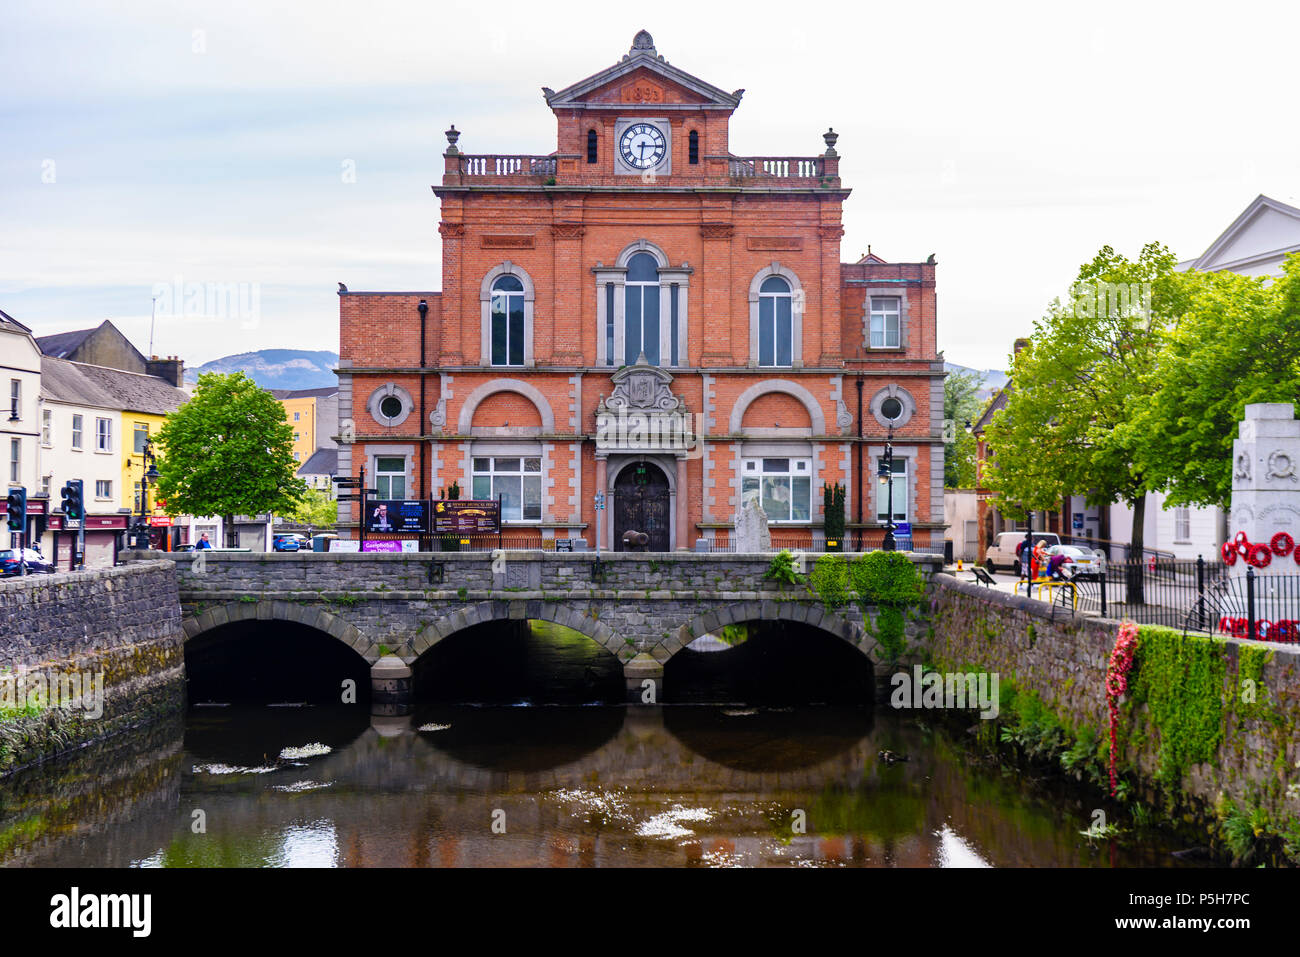 Newry Town Hall over the canal.  Northern Ireland. - Stock Image